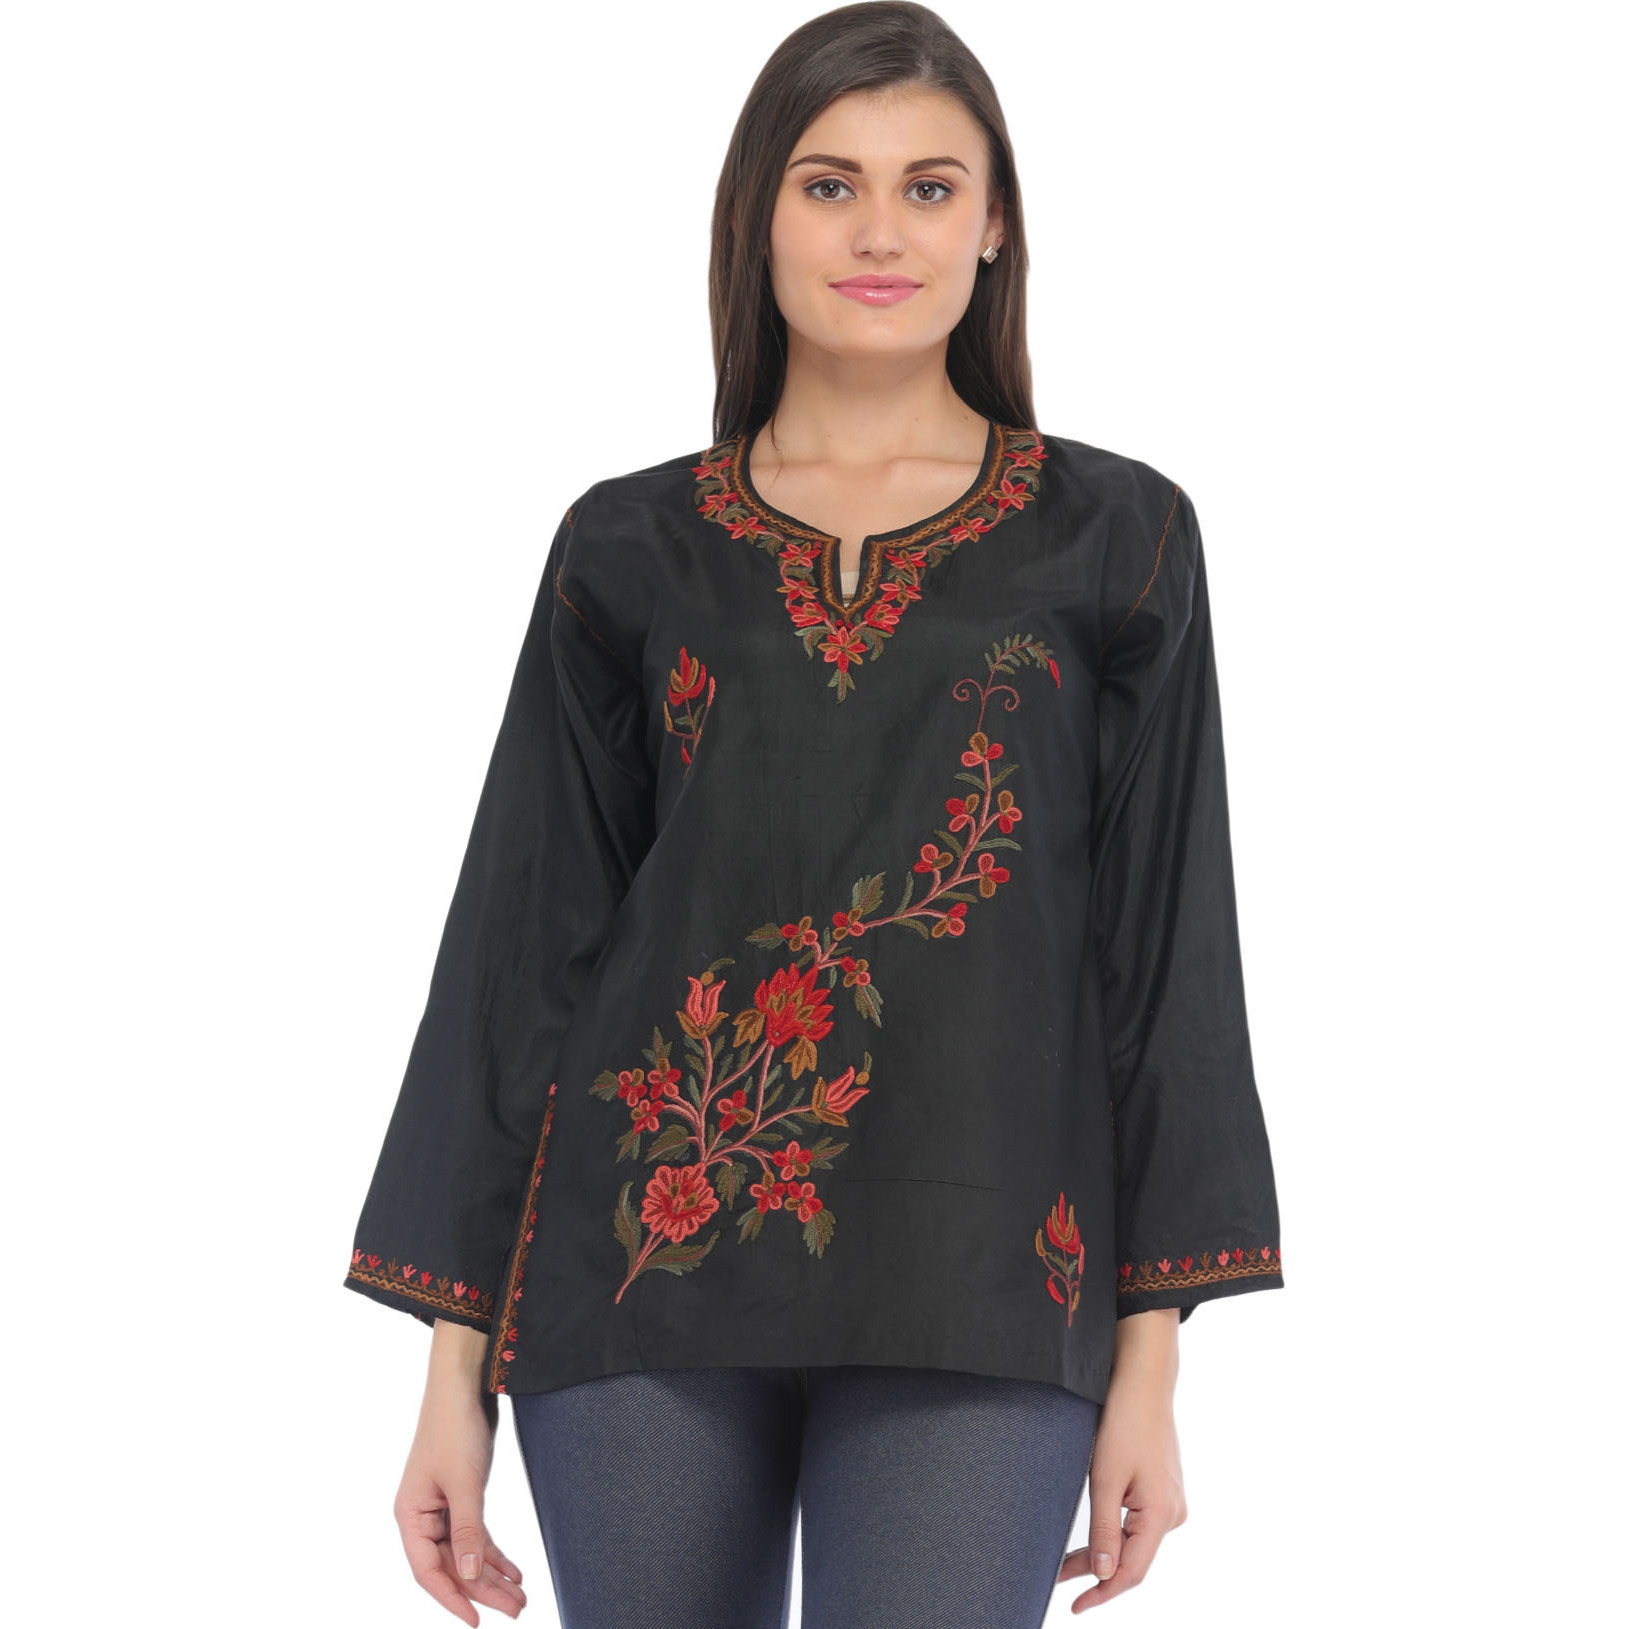 Caviar-Black Ari Short Kurti from Kashmir with Embroidery by Hand